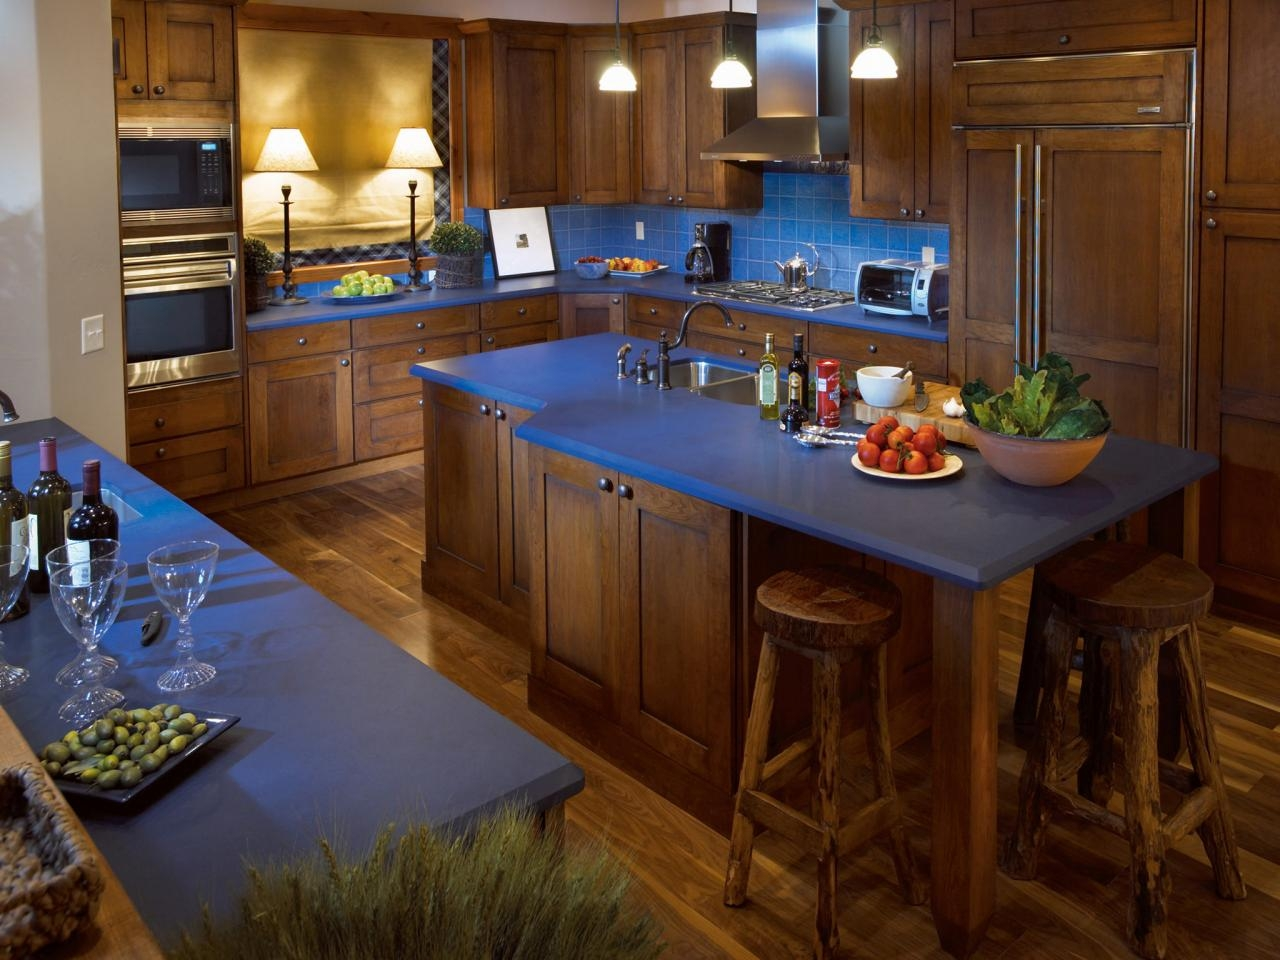 Kitchen Decorating Ideas With Blue Countertops